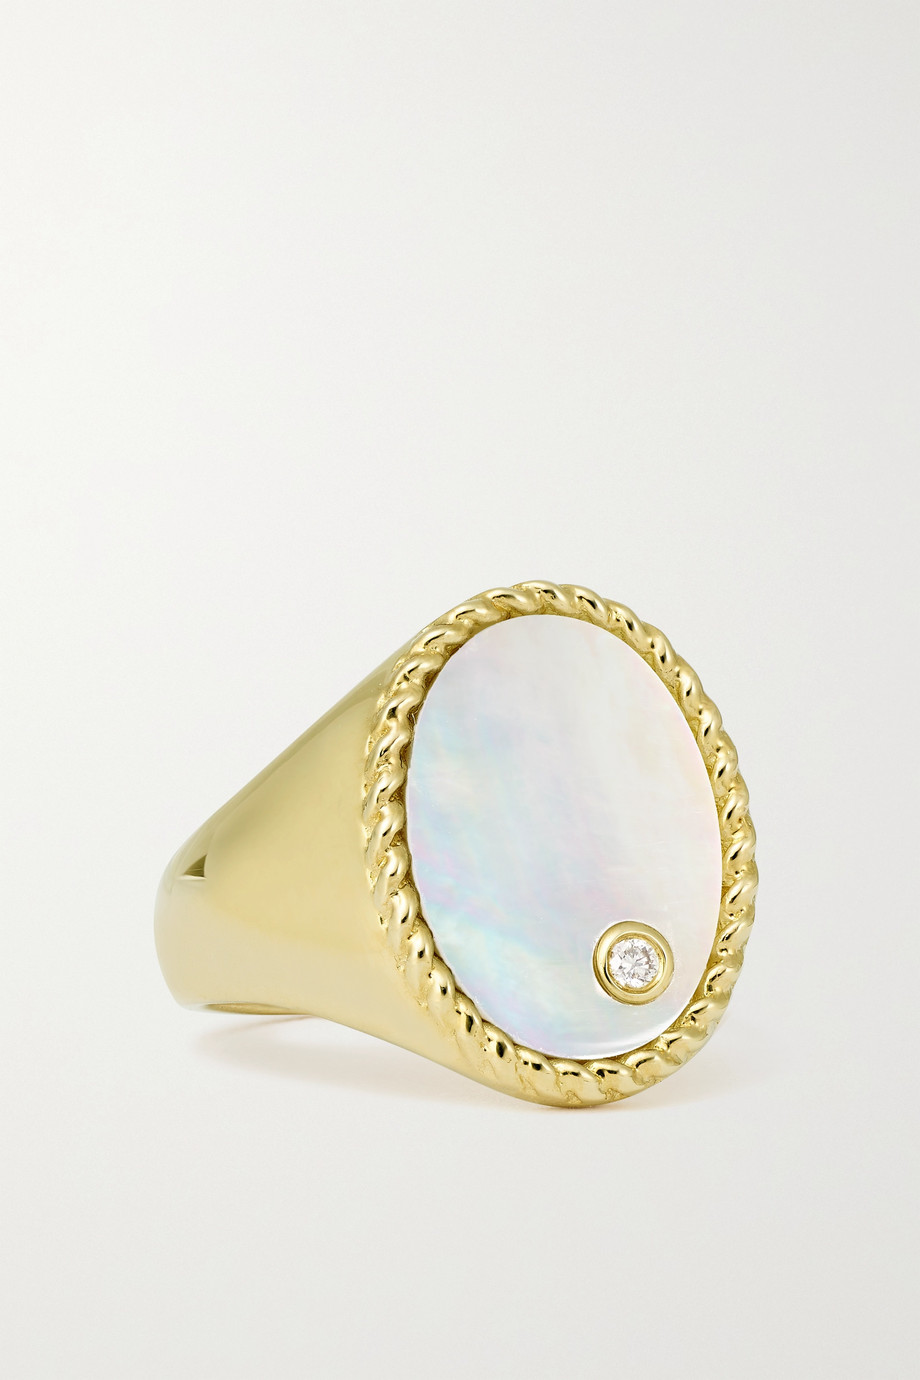 Yvonne Léon 9-karat gold, mother-of-pearl and diamond signet ring